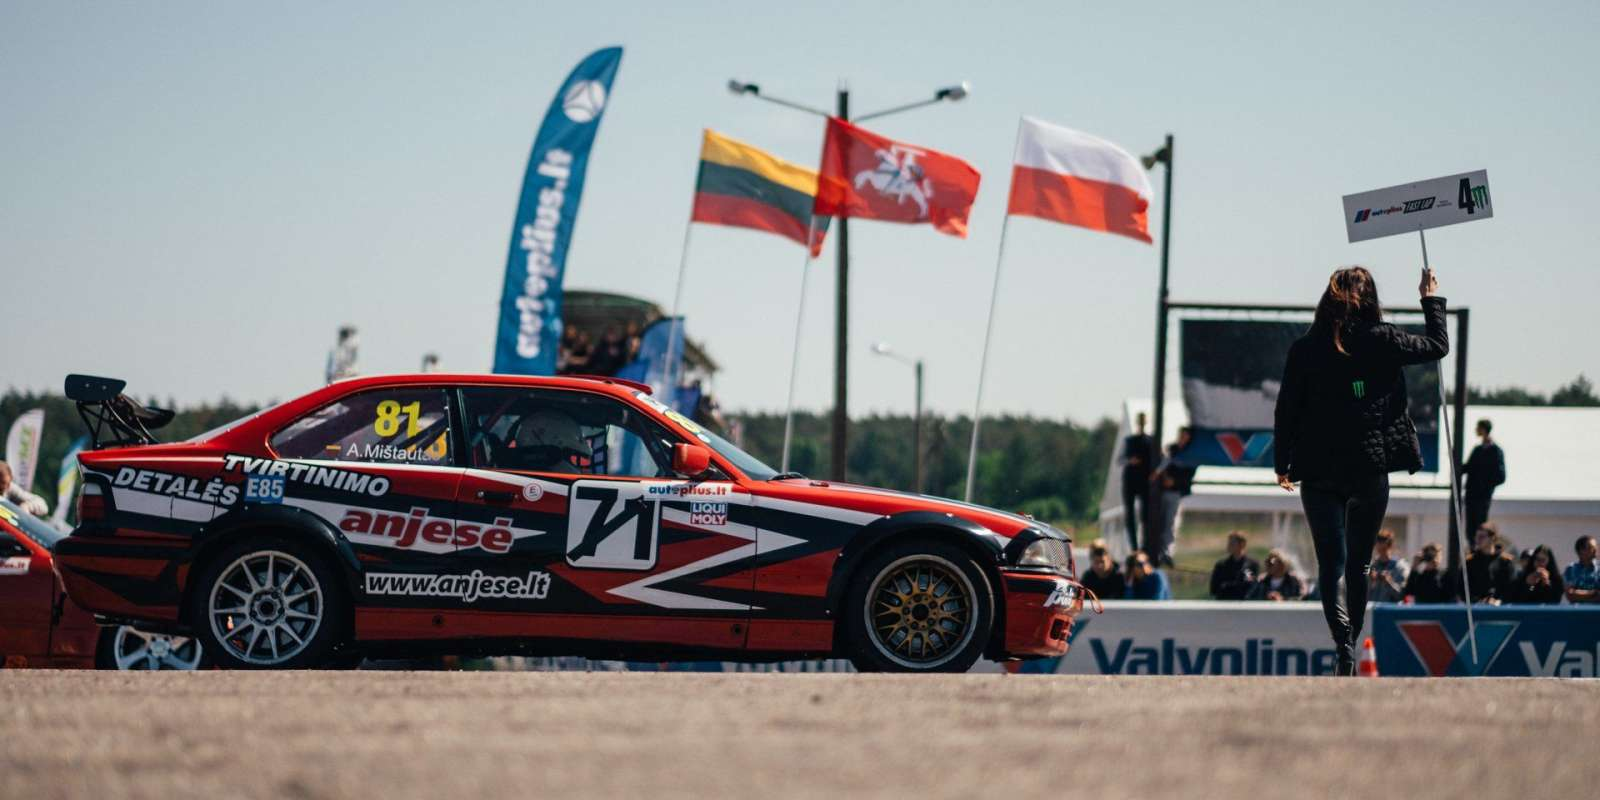 Images from Fast Lap Stage I in Nemunos Ziedas track in Kaunas, Lithuania